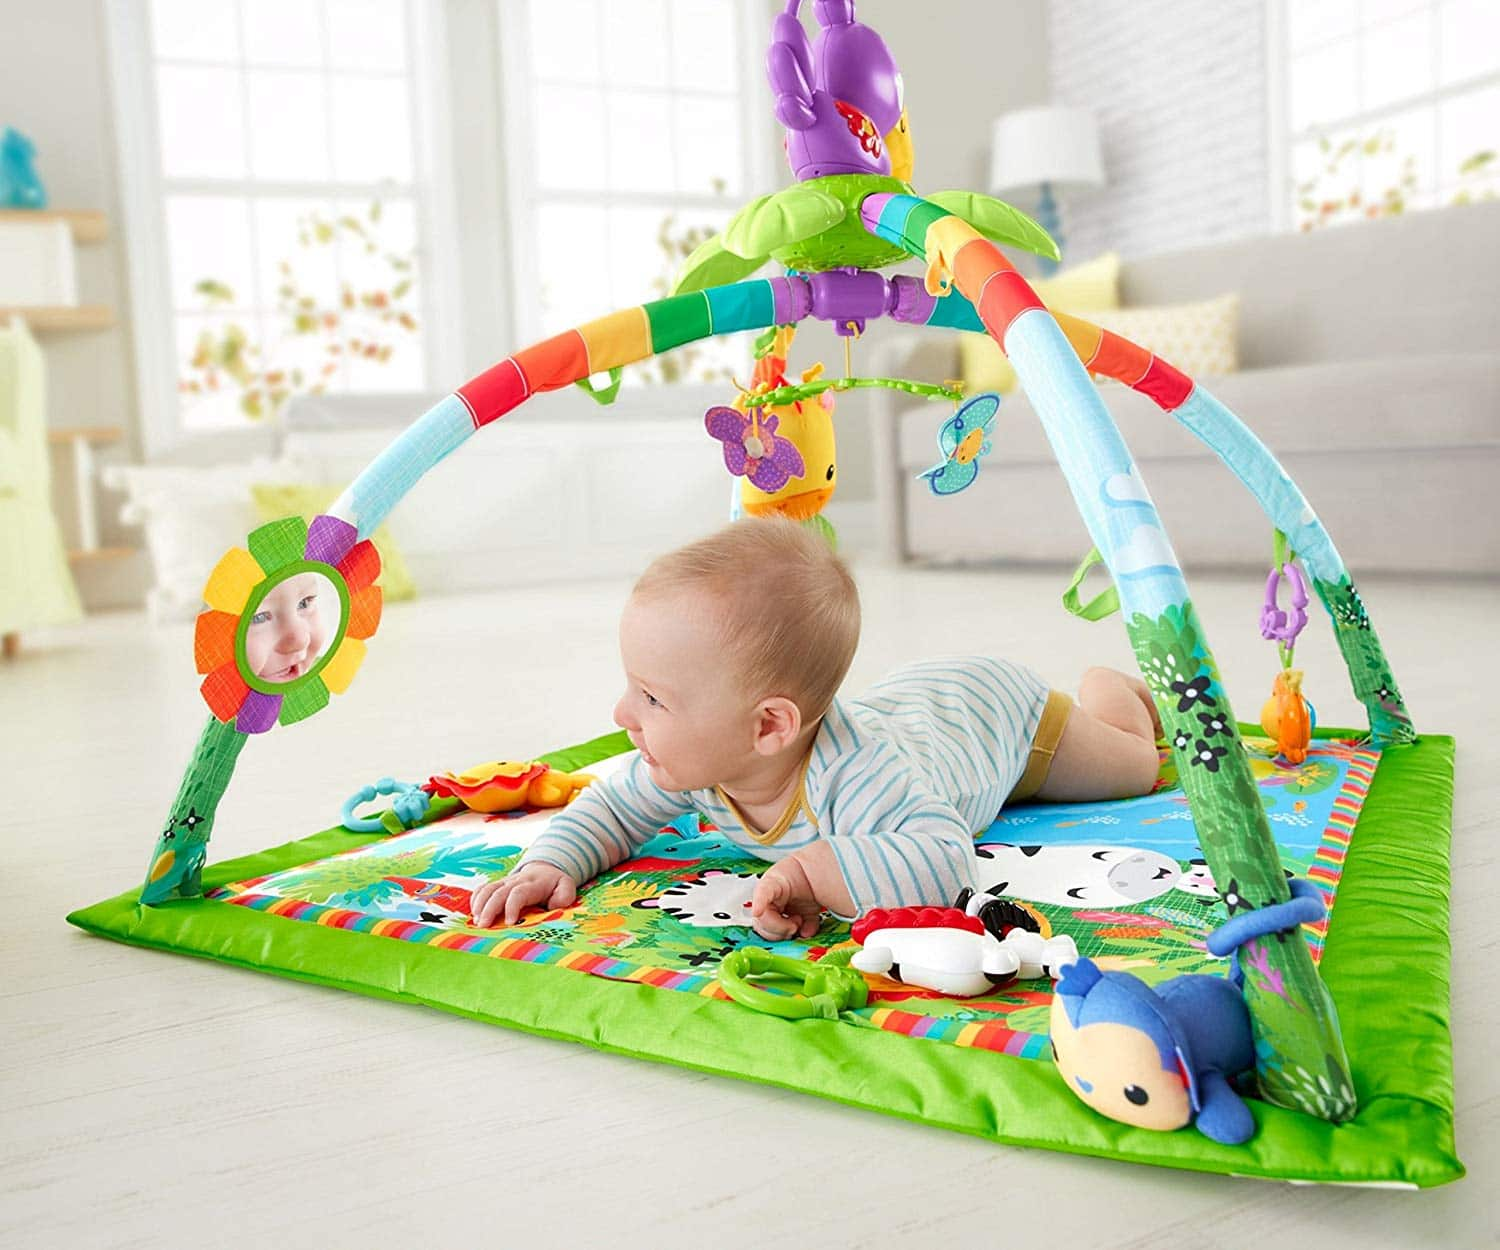 $39.89, 33% off Fisher-Price Rainforest Music & Lights Deluxe Gym for Prime Members